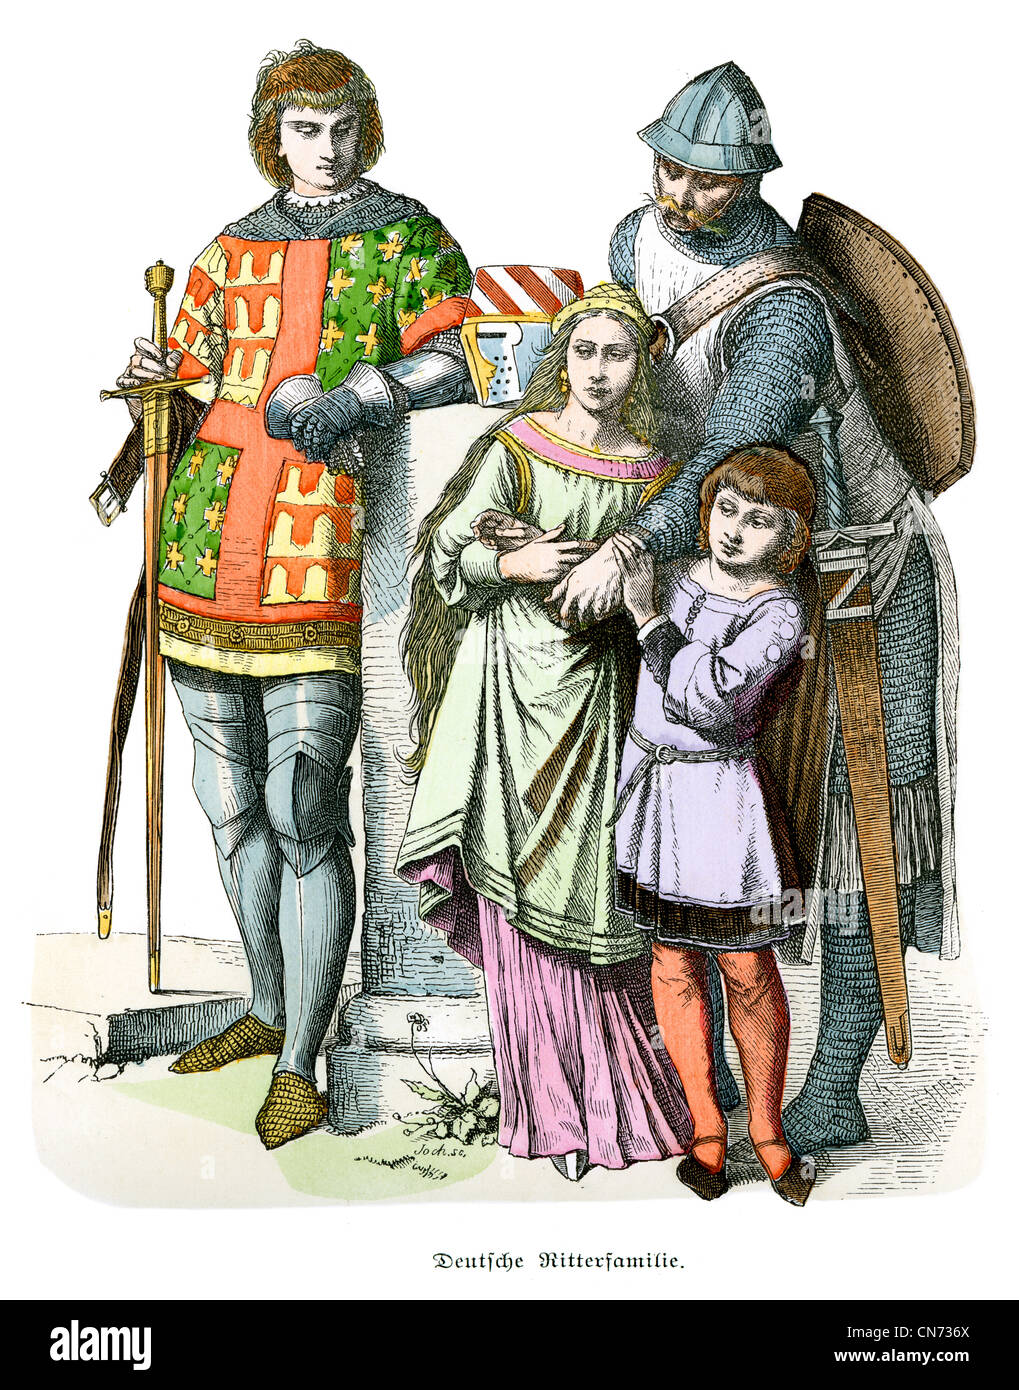 German knightly family from the 13th Century - Stock Image